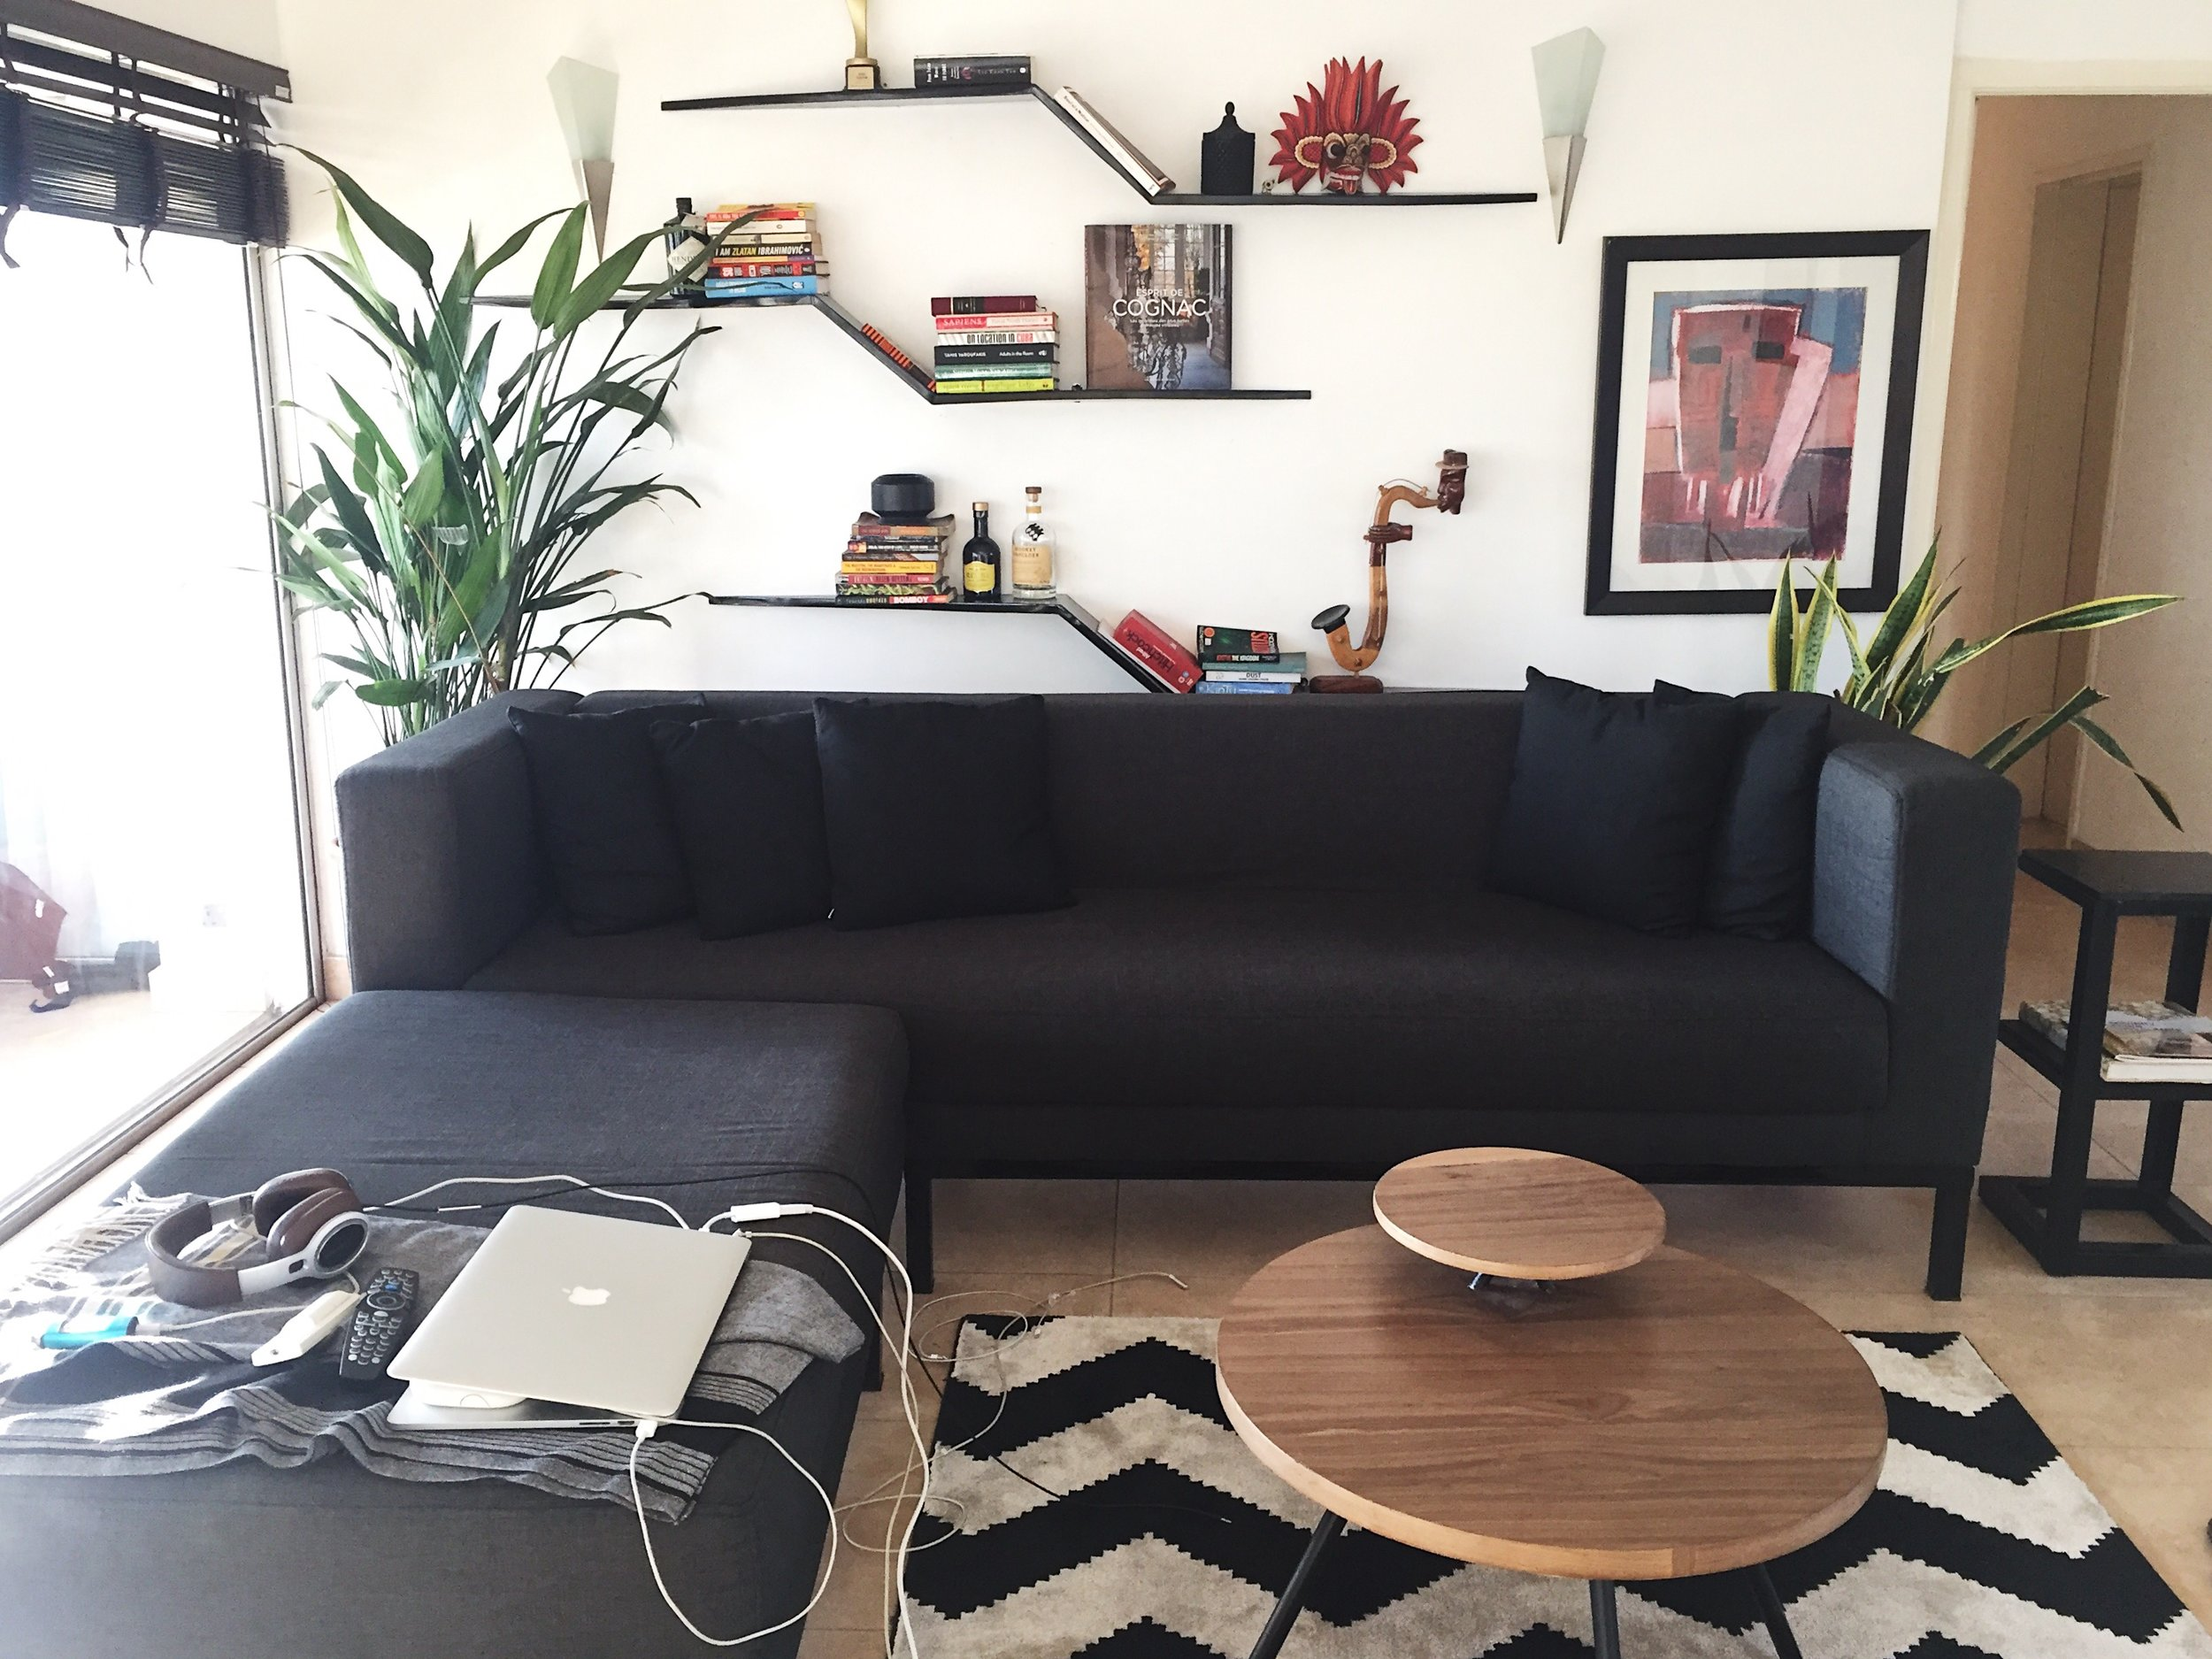 L SHAPED COUCH.JPG